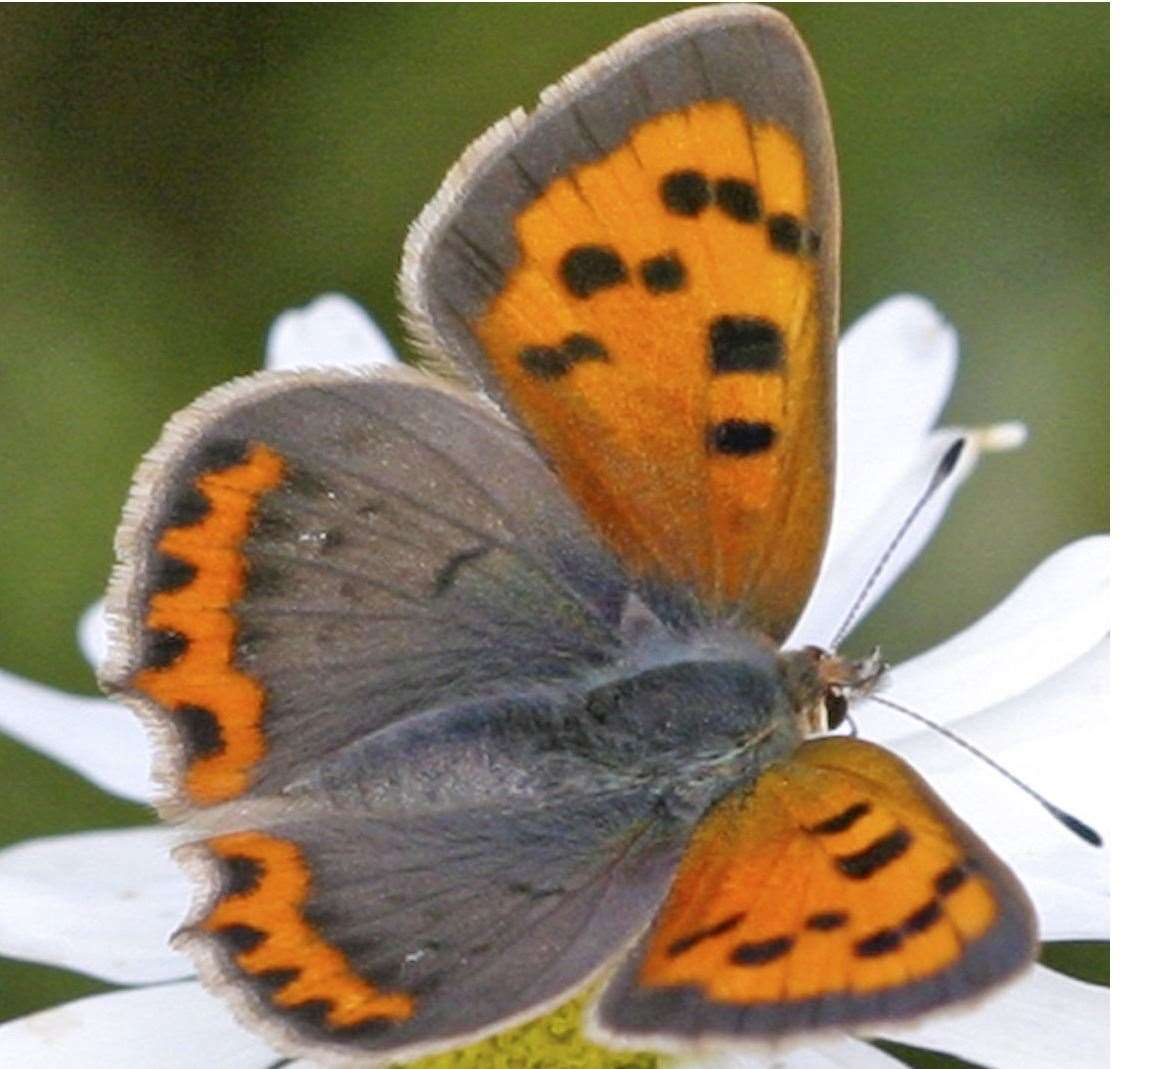 A small copper is the size of a 50p piece